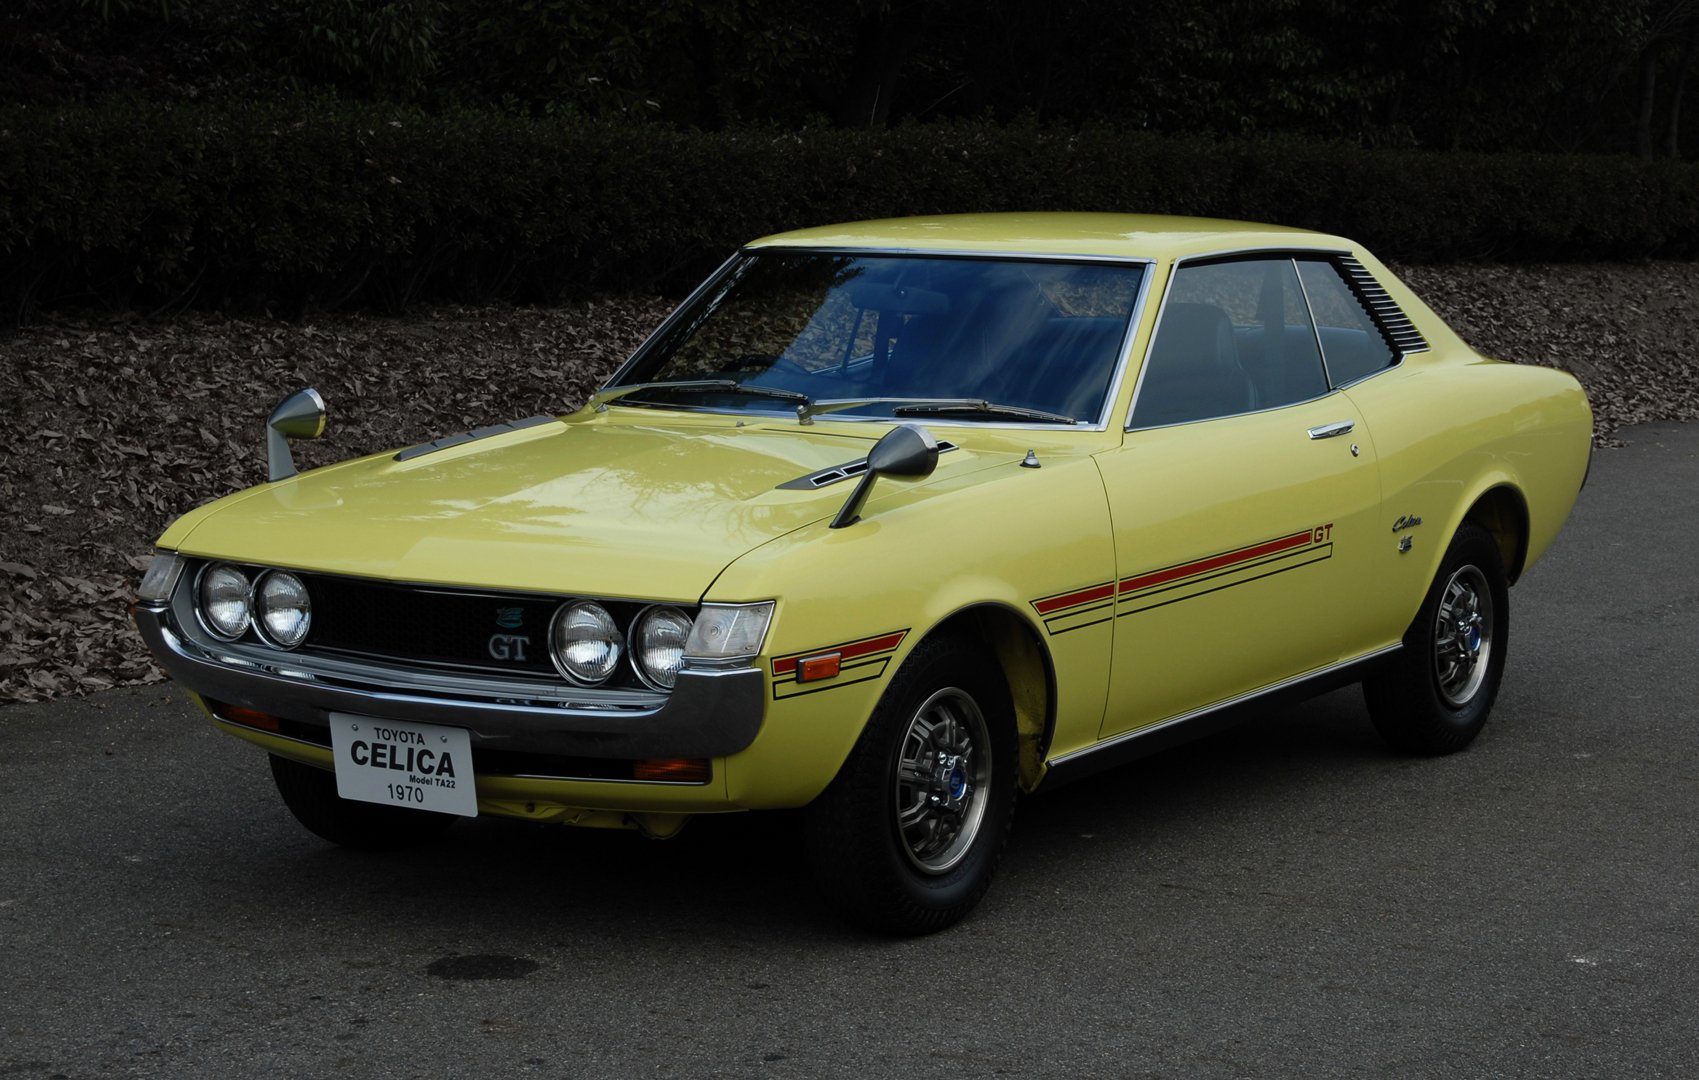 1970 toyota celica 1600 g t ta22 classic wallpaper 1699x1080 516962 wallpaperup. Black Bedroom Furniture Sets. Home Design Ideas